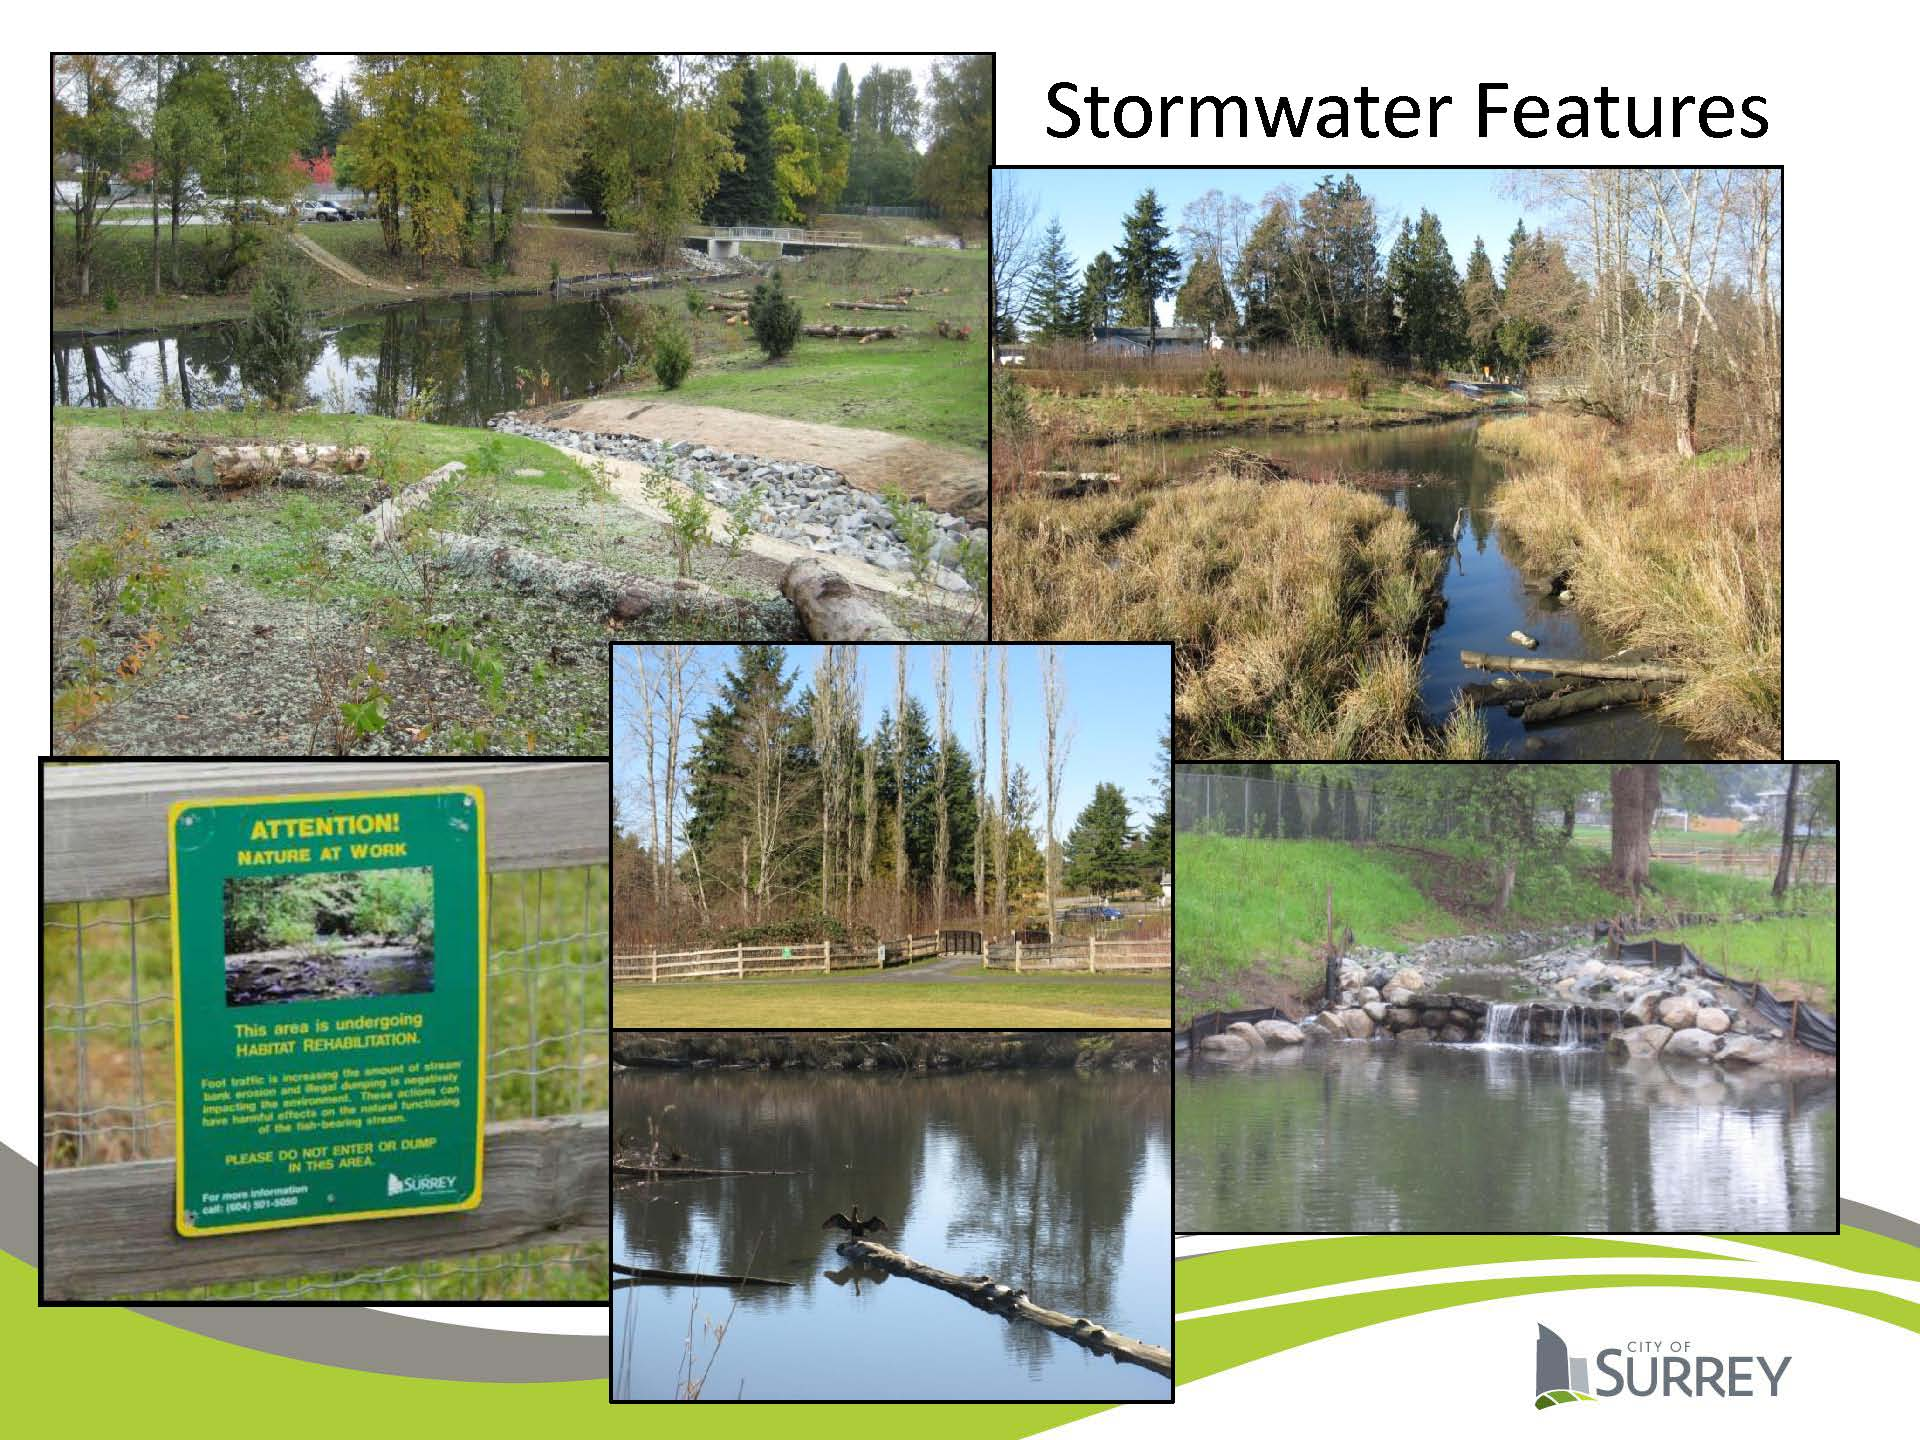 Local governments often mimic nature (design with nature) to secure infrastructure services. The City of Surrey continues to rehabilitate wetlands for water retention and stream protection as well as adding amenity value to local parks and real estate. (Image Credit: Carrie Baron, City of Surrey)